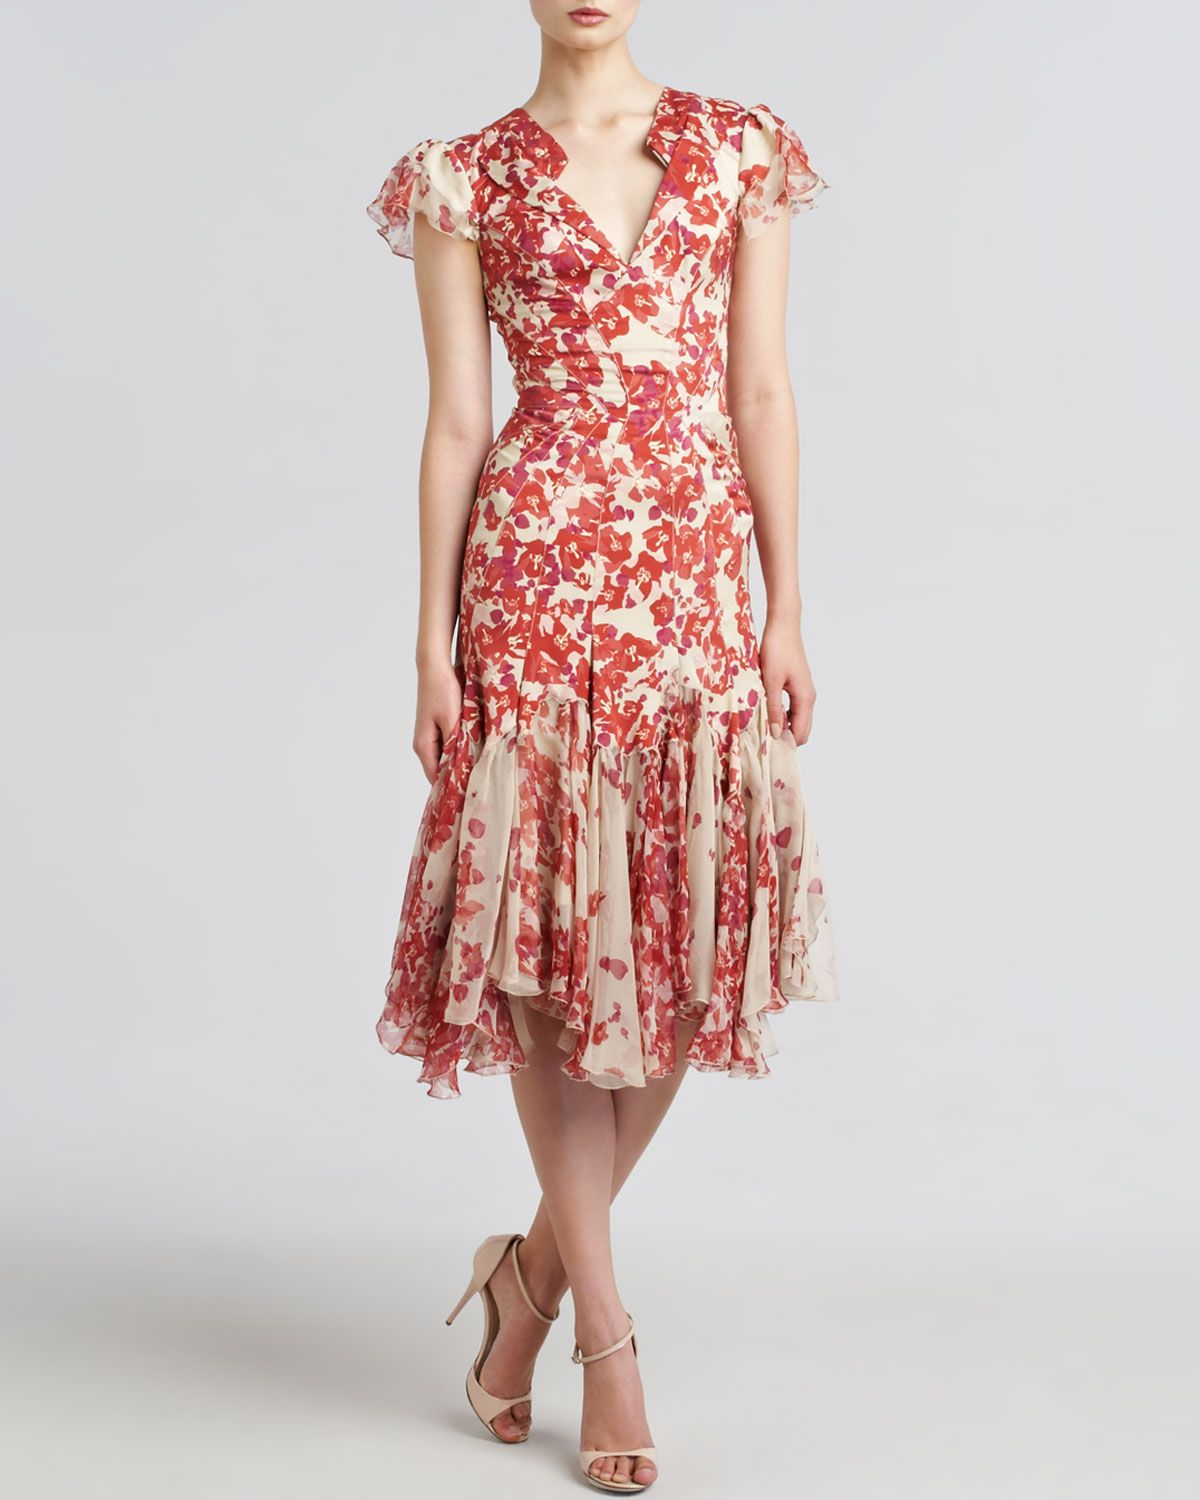 Zac Posen Hibiscus-Print Flared Dress - Neiman Marcus